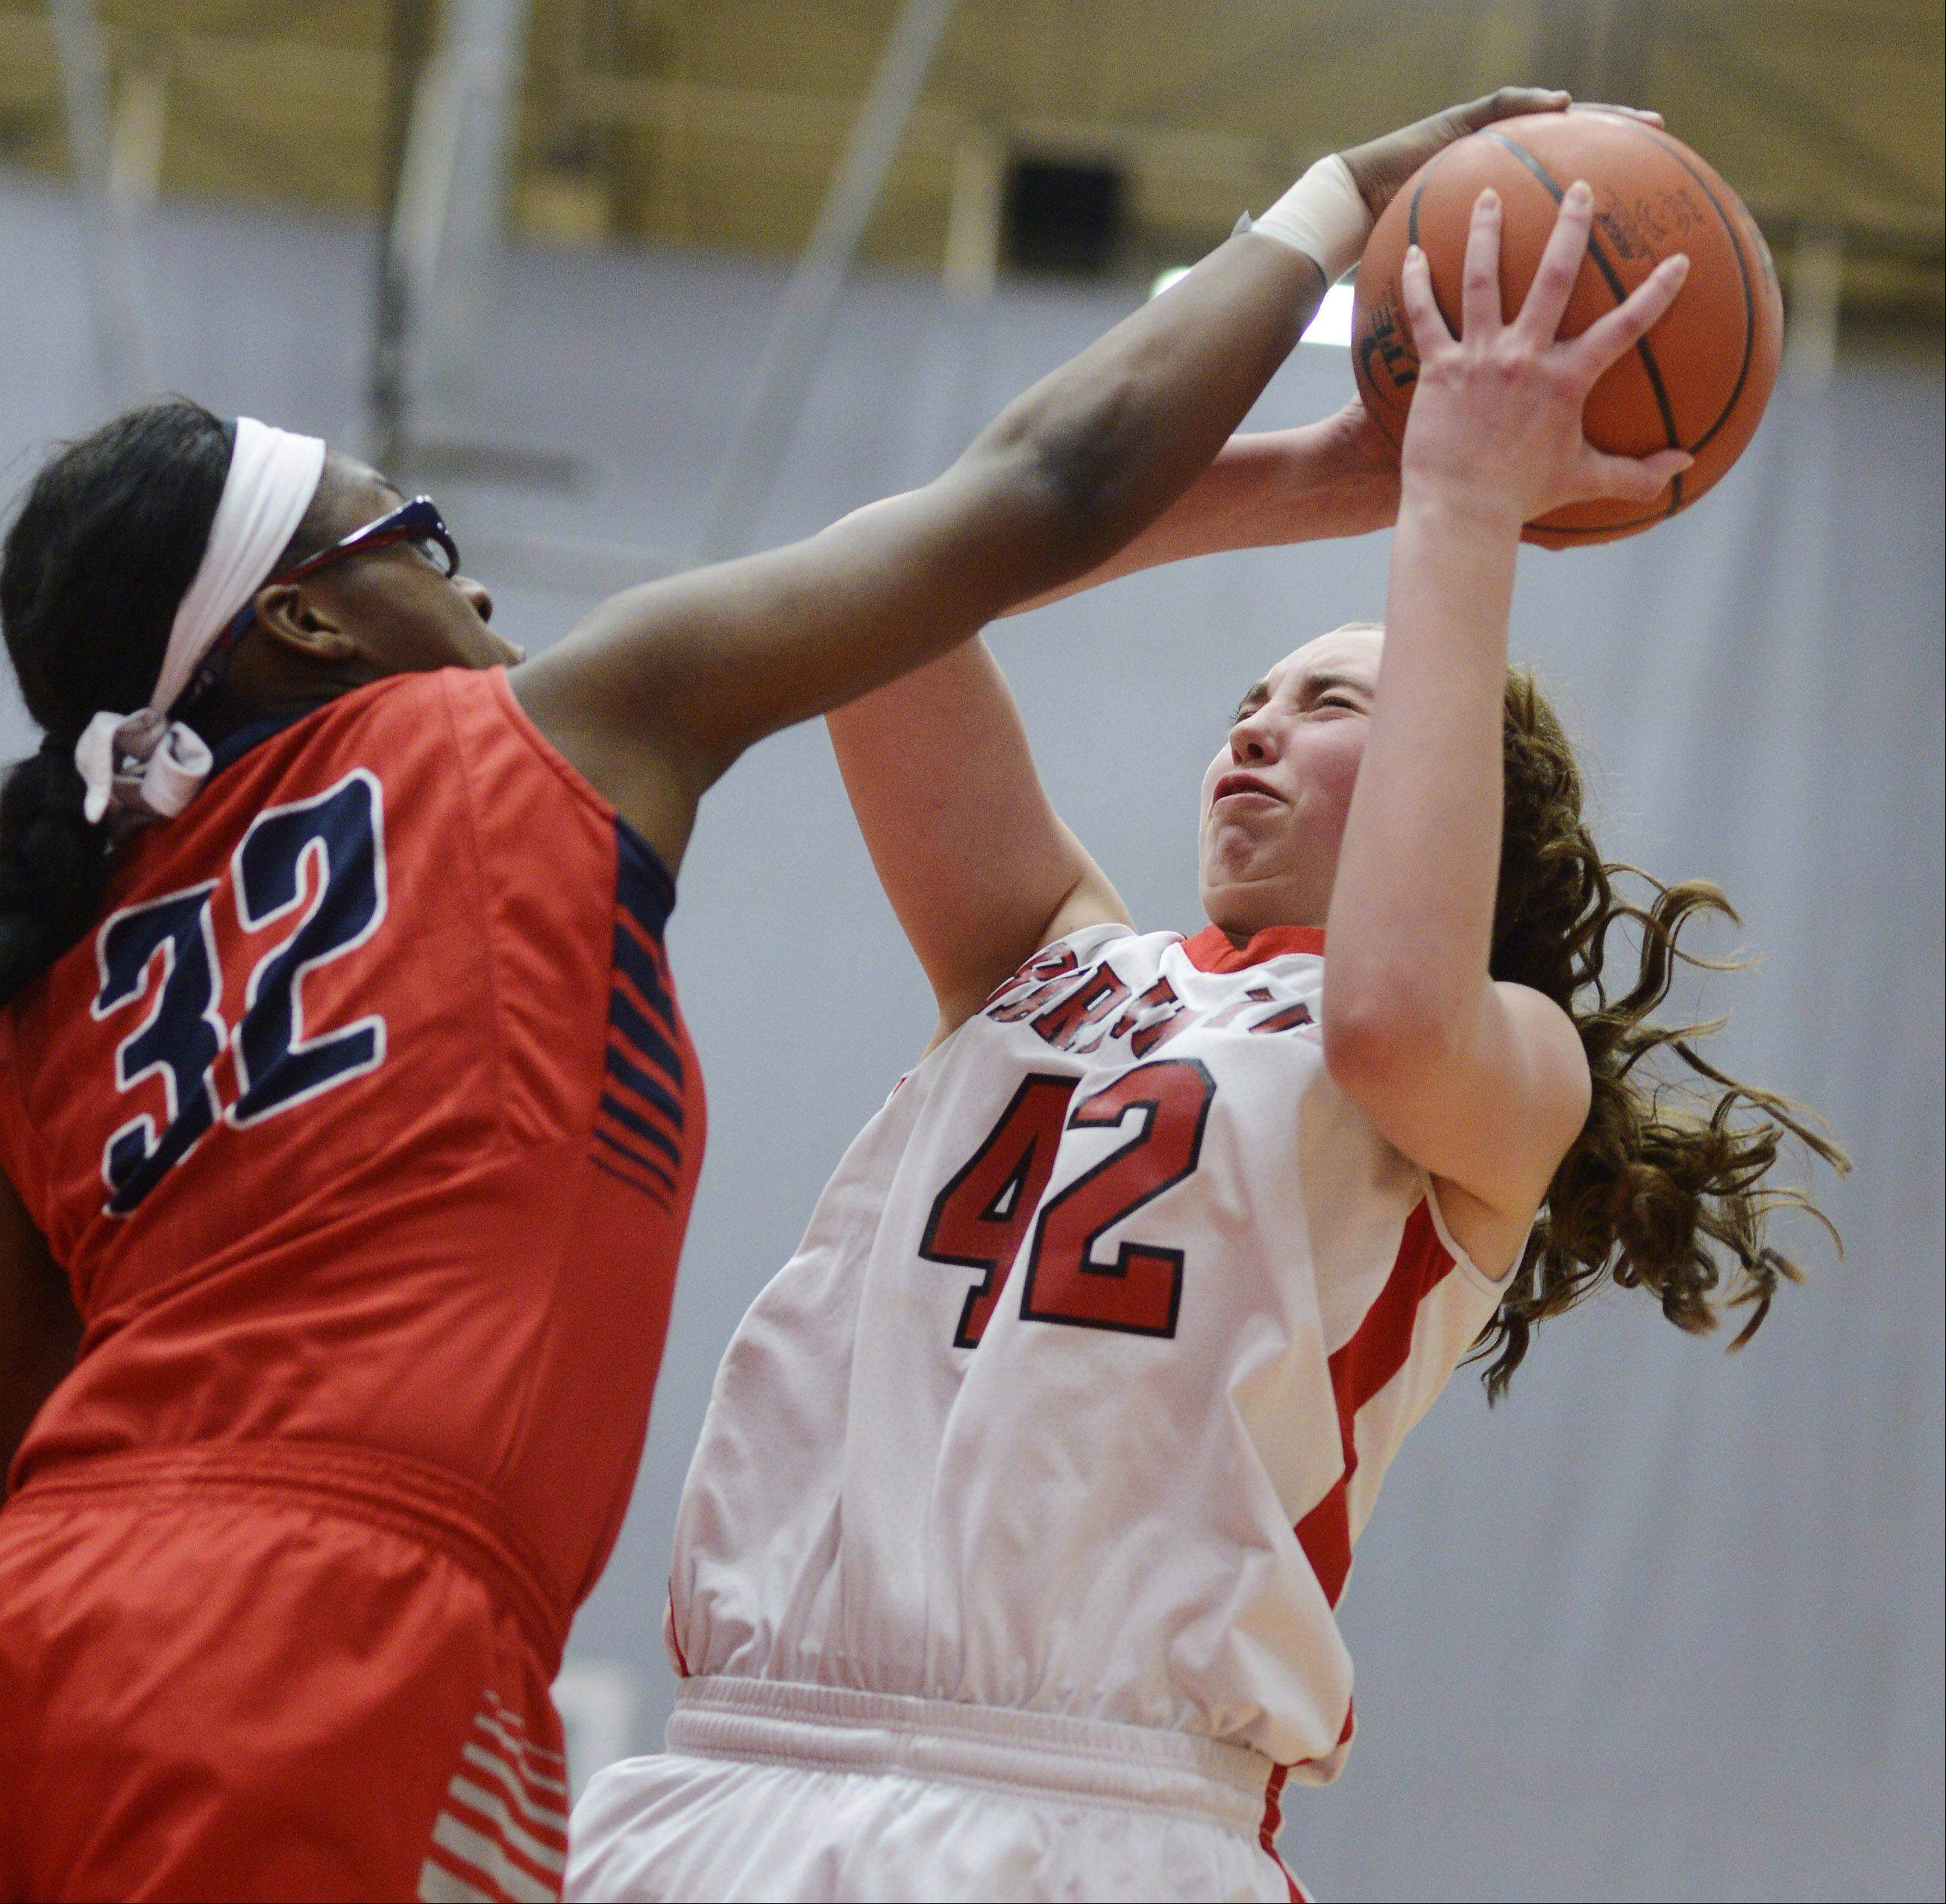 South Elgin�s Bridgette Williams, left, blocks a shot by Barrington�s Megan Talbot during Wednesday�s game at Barrington.